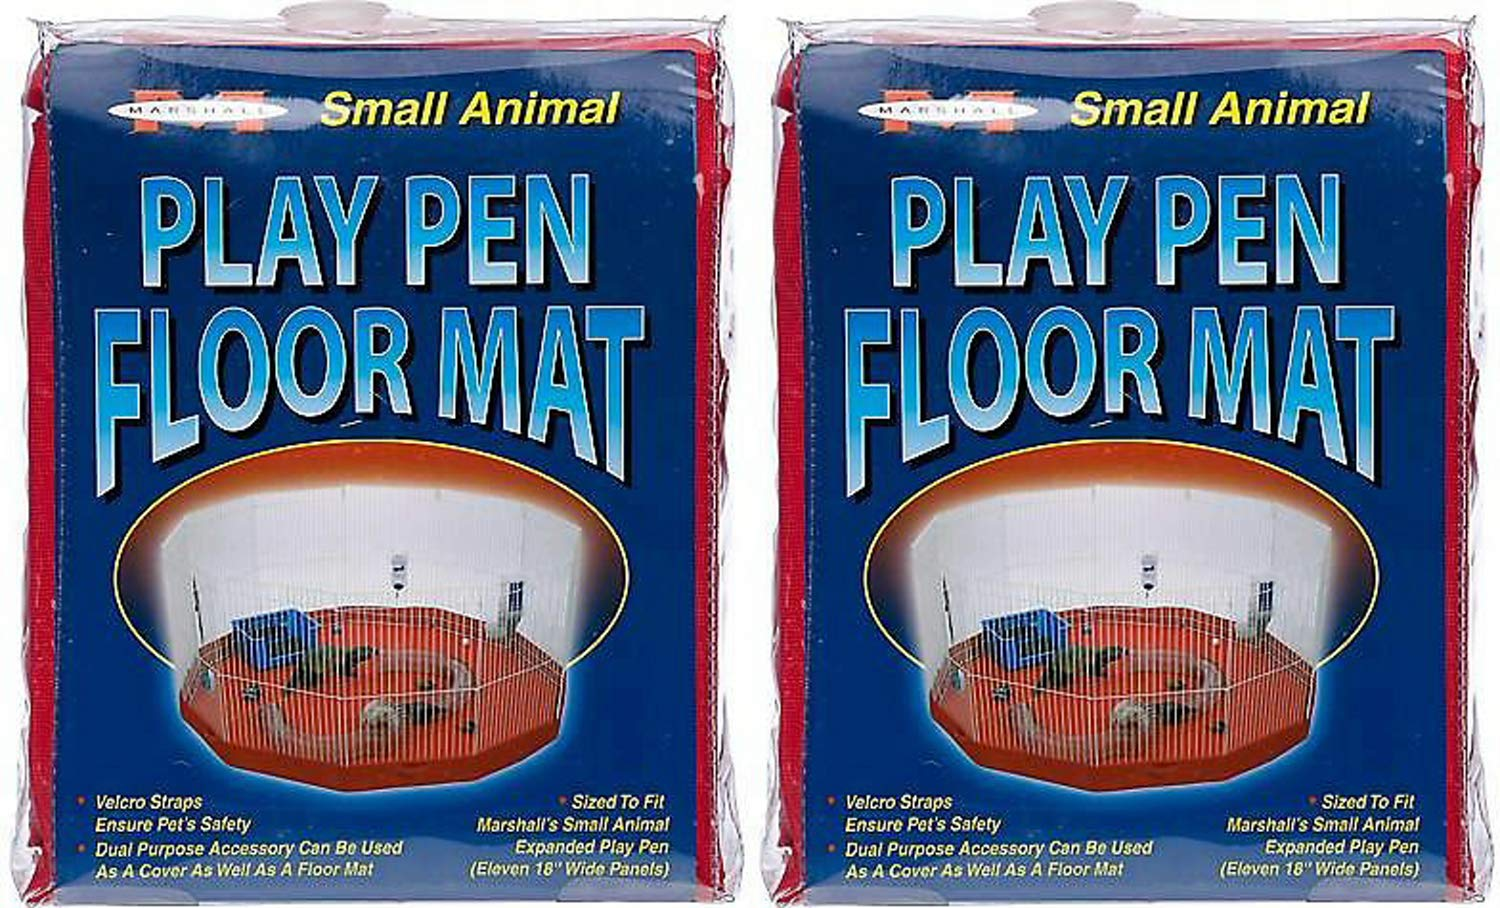 Marshall Mat/Cover for Small Animal Play Pens, Deluxe, 11 Panel, 2 Pack by Marshall (Image #2)